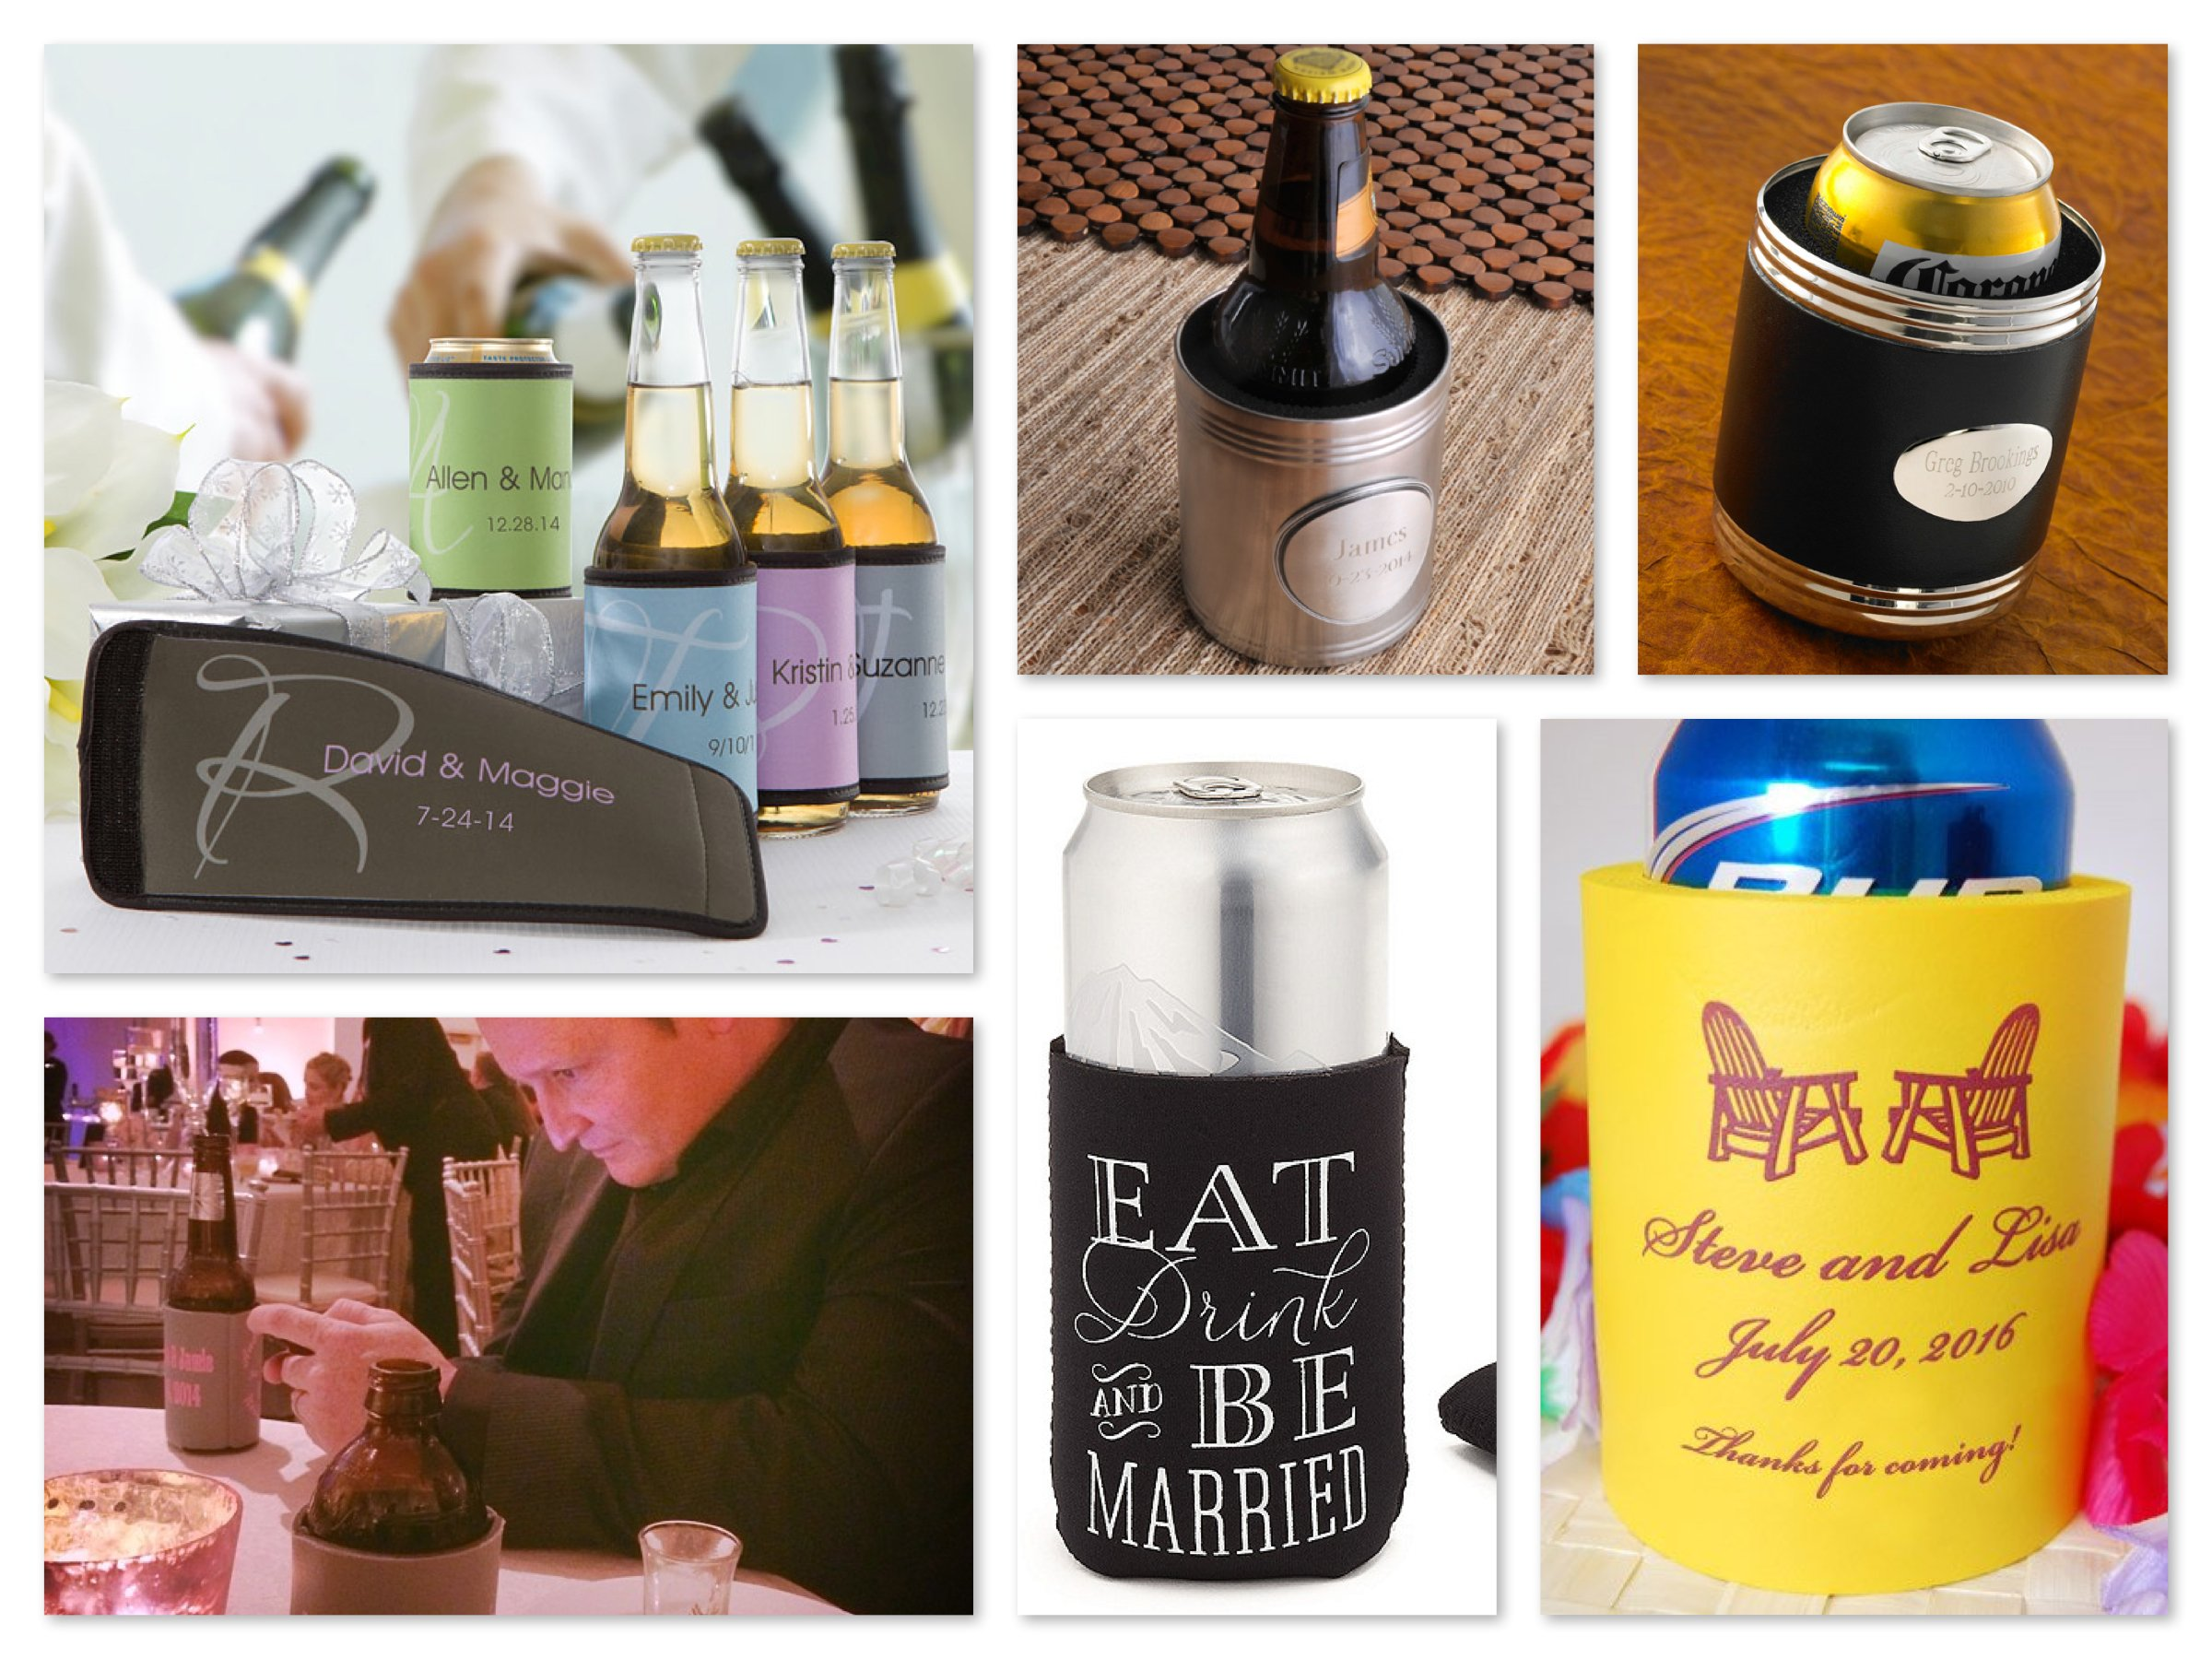 Wedding favor Koozies, groomsmen gift koozies, Jamie Lynn Spears Wedding